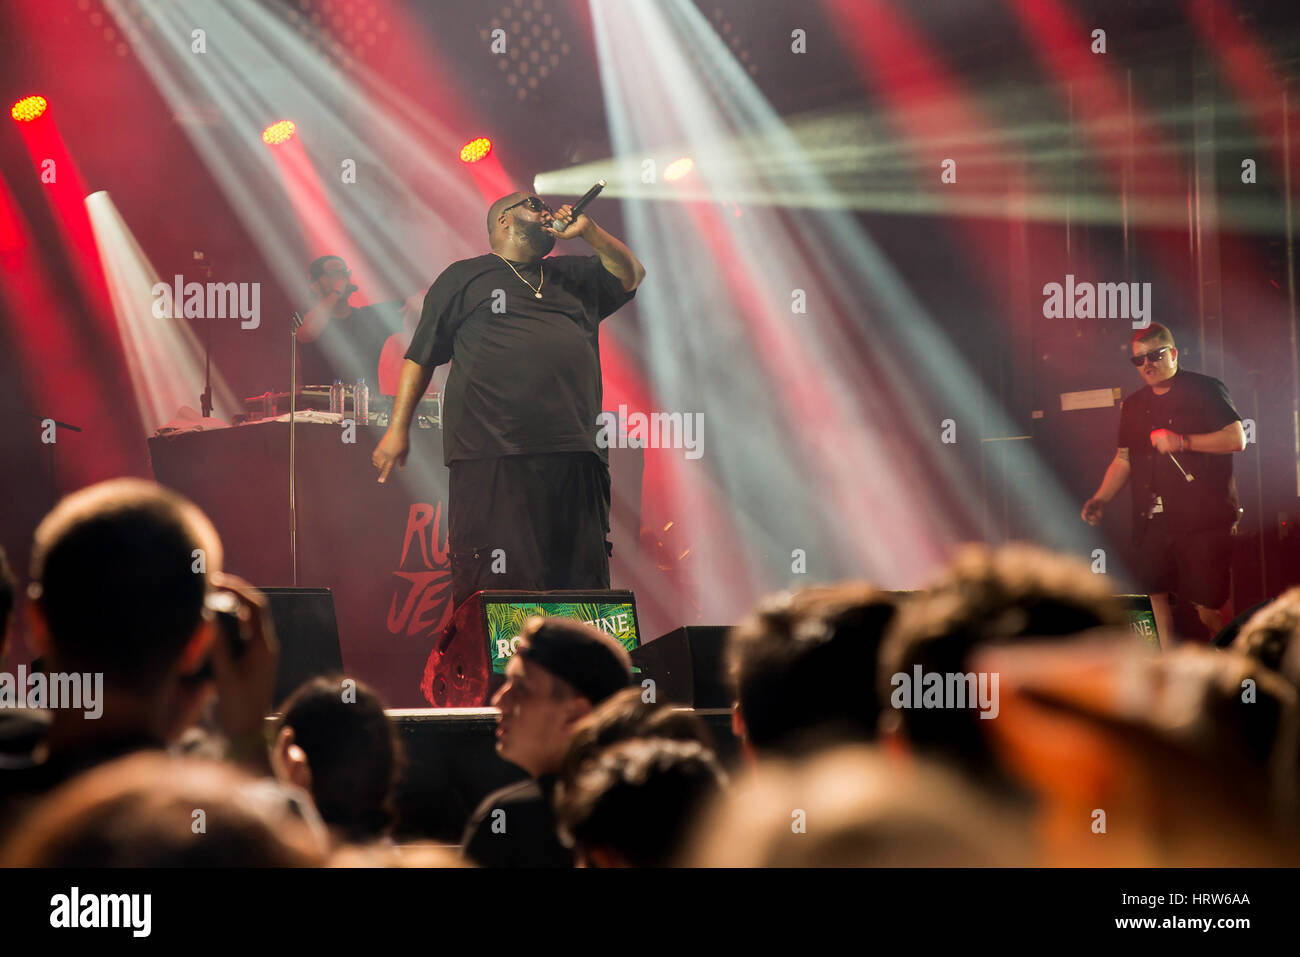 PARIS - AUG 31: Run the Jewels (hip hop band) in concert at Rock En Seine Festival on August 31, 2015 in Paris, Stock Photo